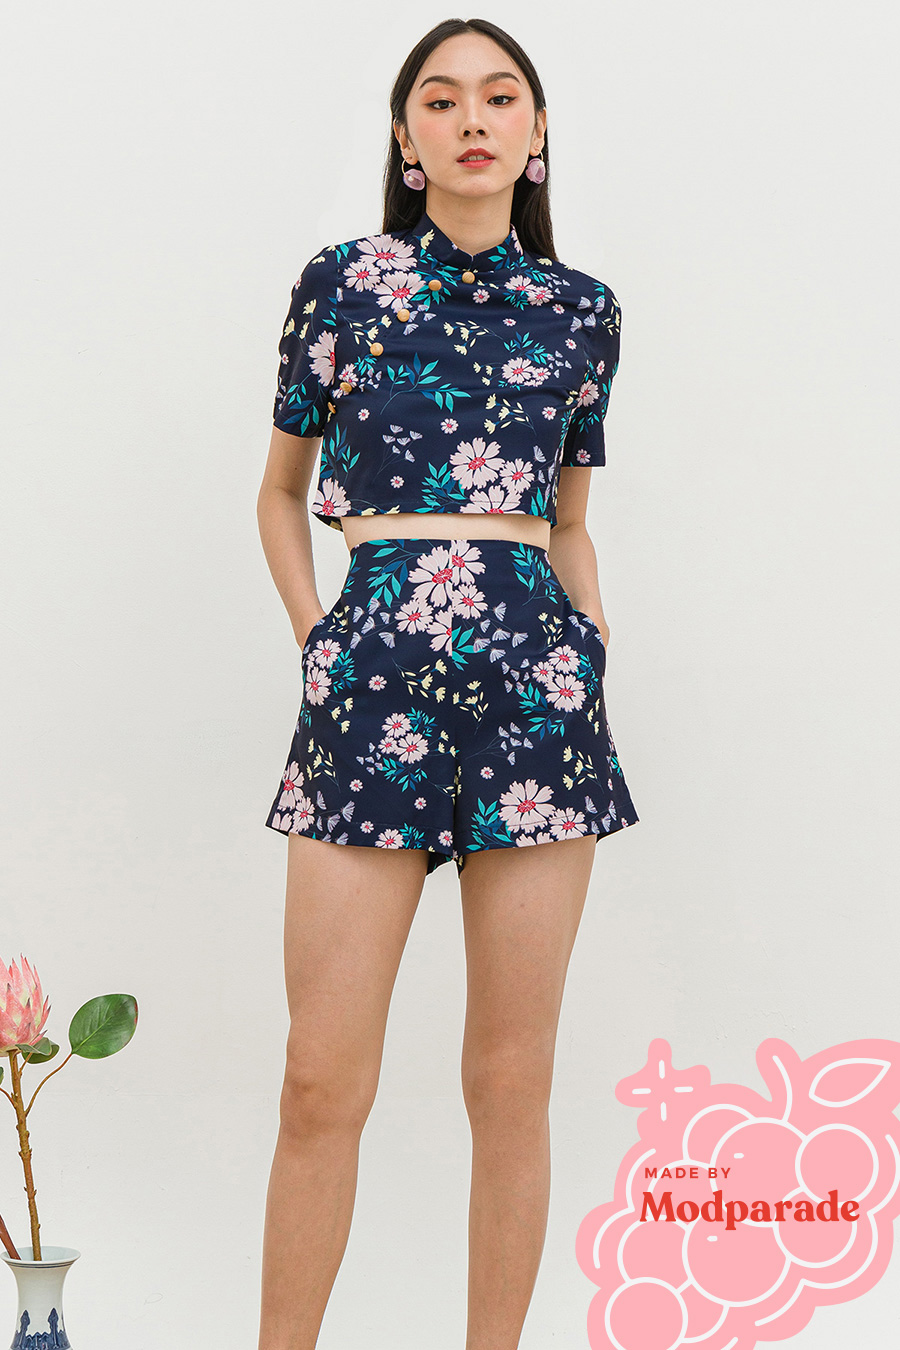 ONOMI SHORTS - VERBENA [BY MODPARADE]